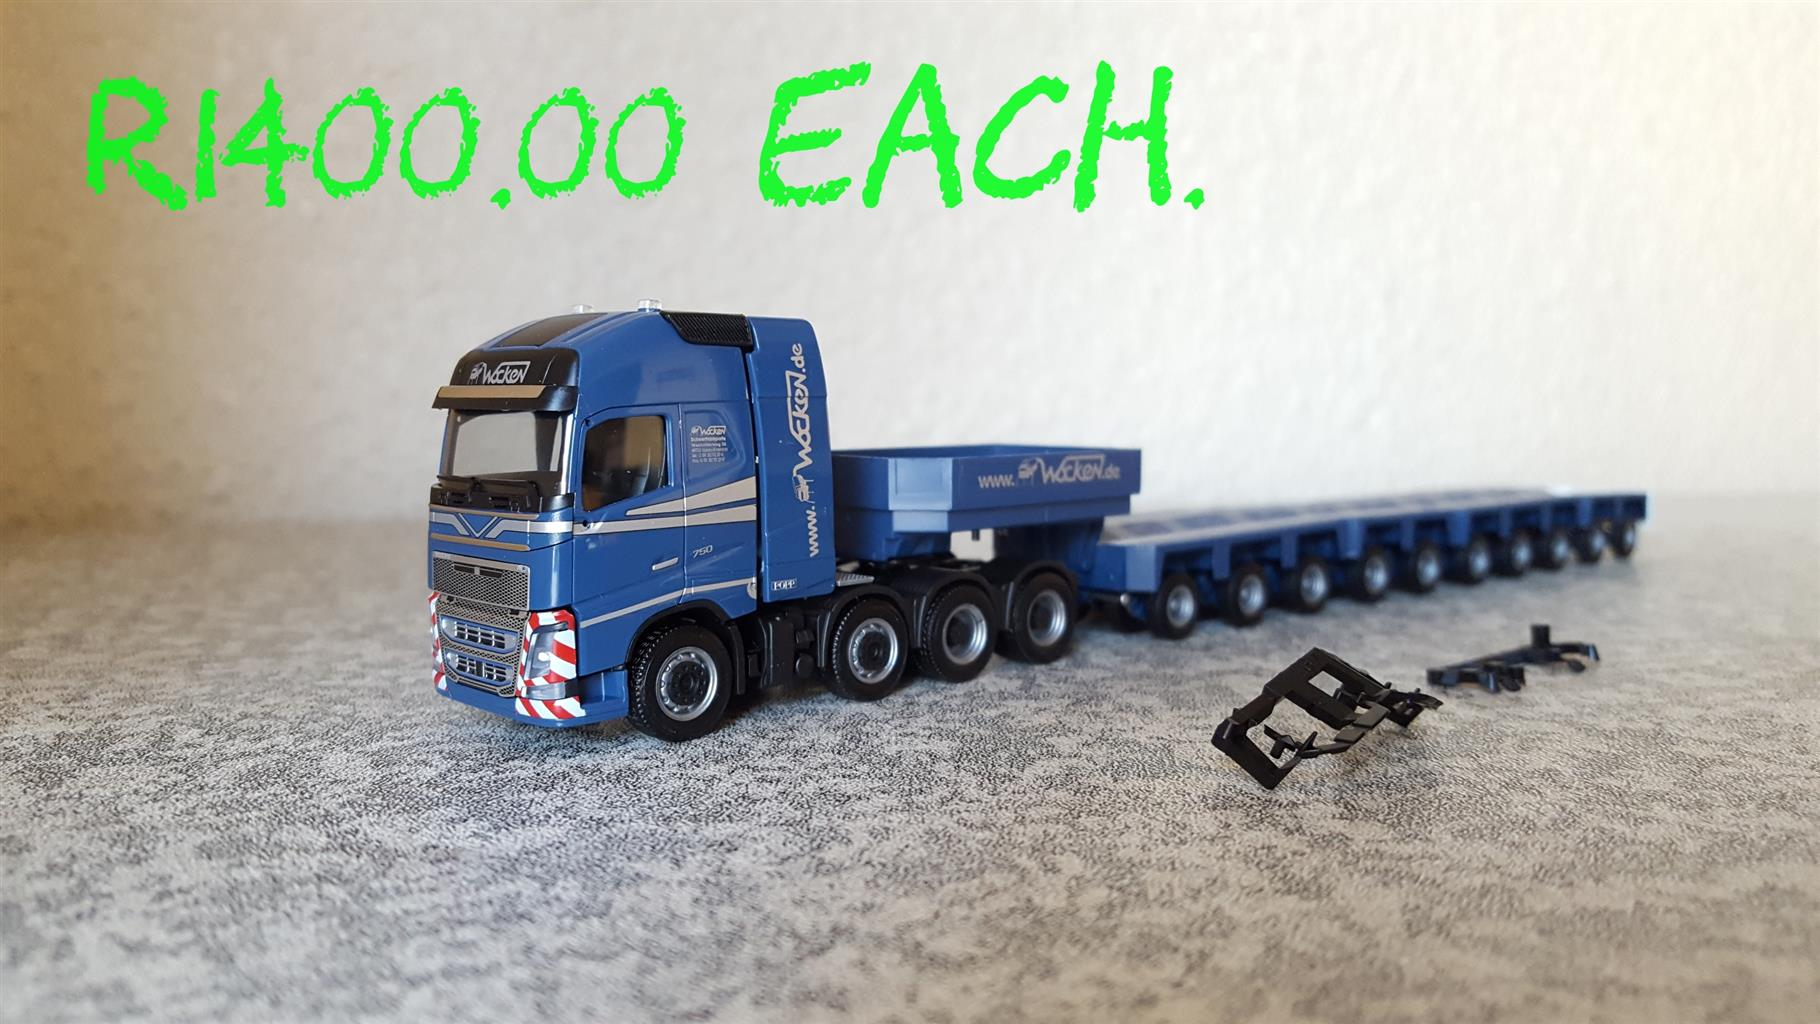 Abnormal Truck Models 1:87 Ho Scale